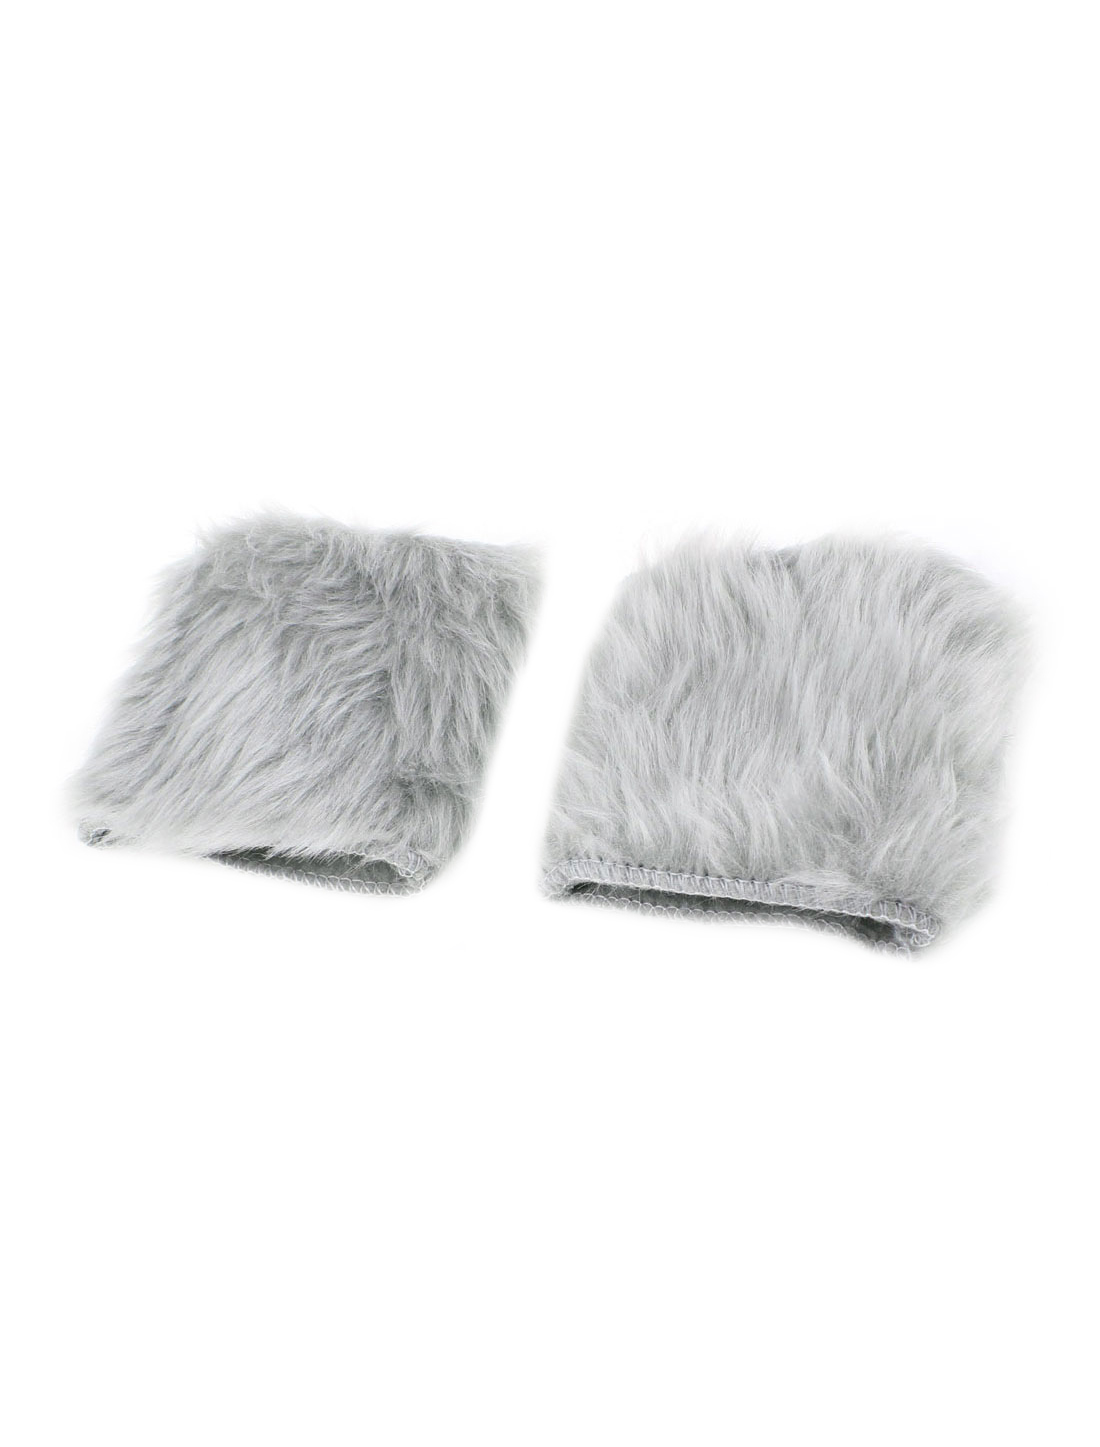 Pair Light Gray Faux Fur Fingerless Winter Gloves Warmer for Ladies